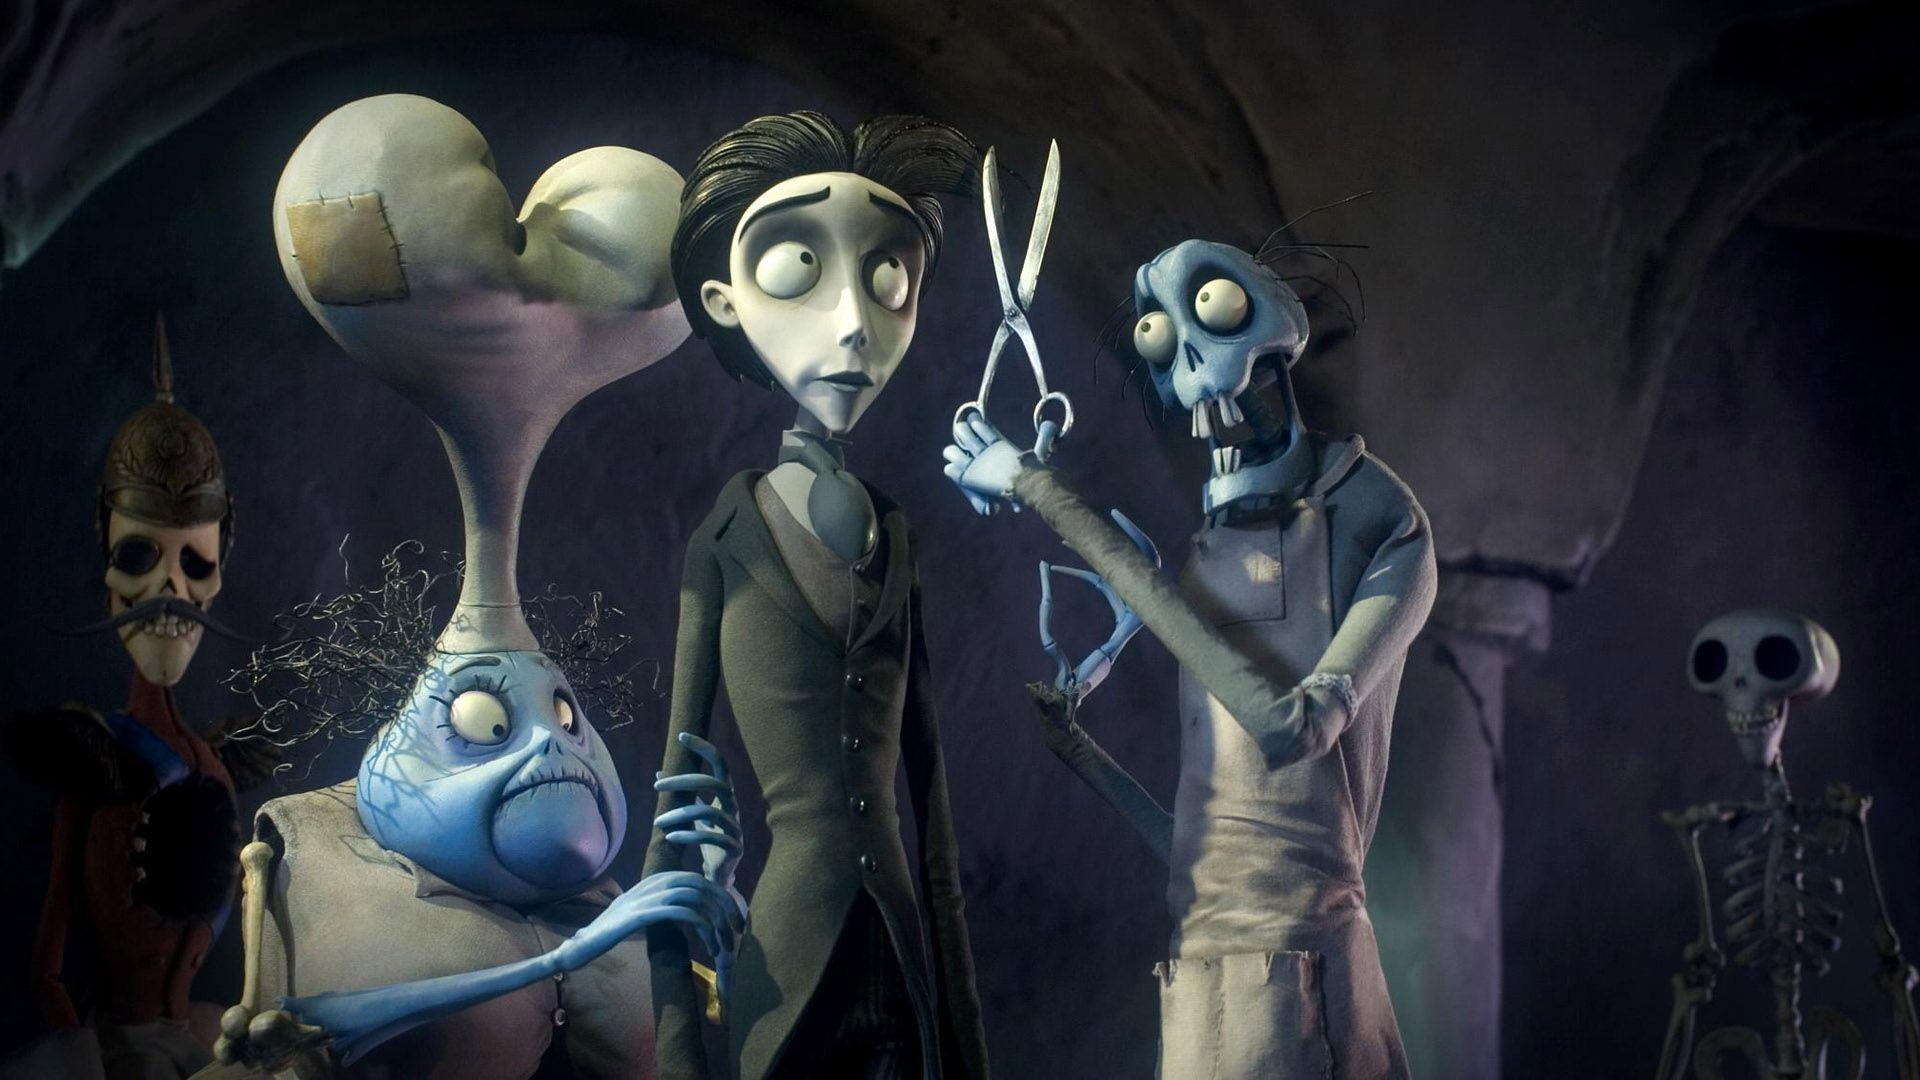 corpse bride movie wallpapers - photo #25